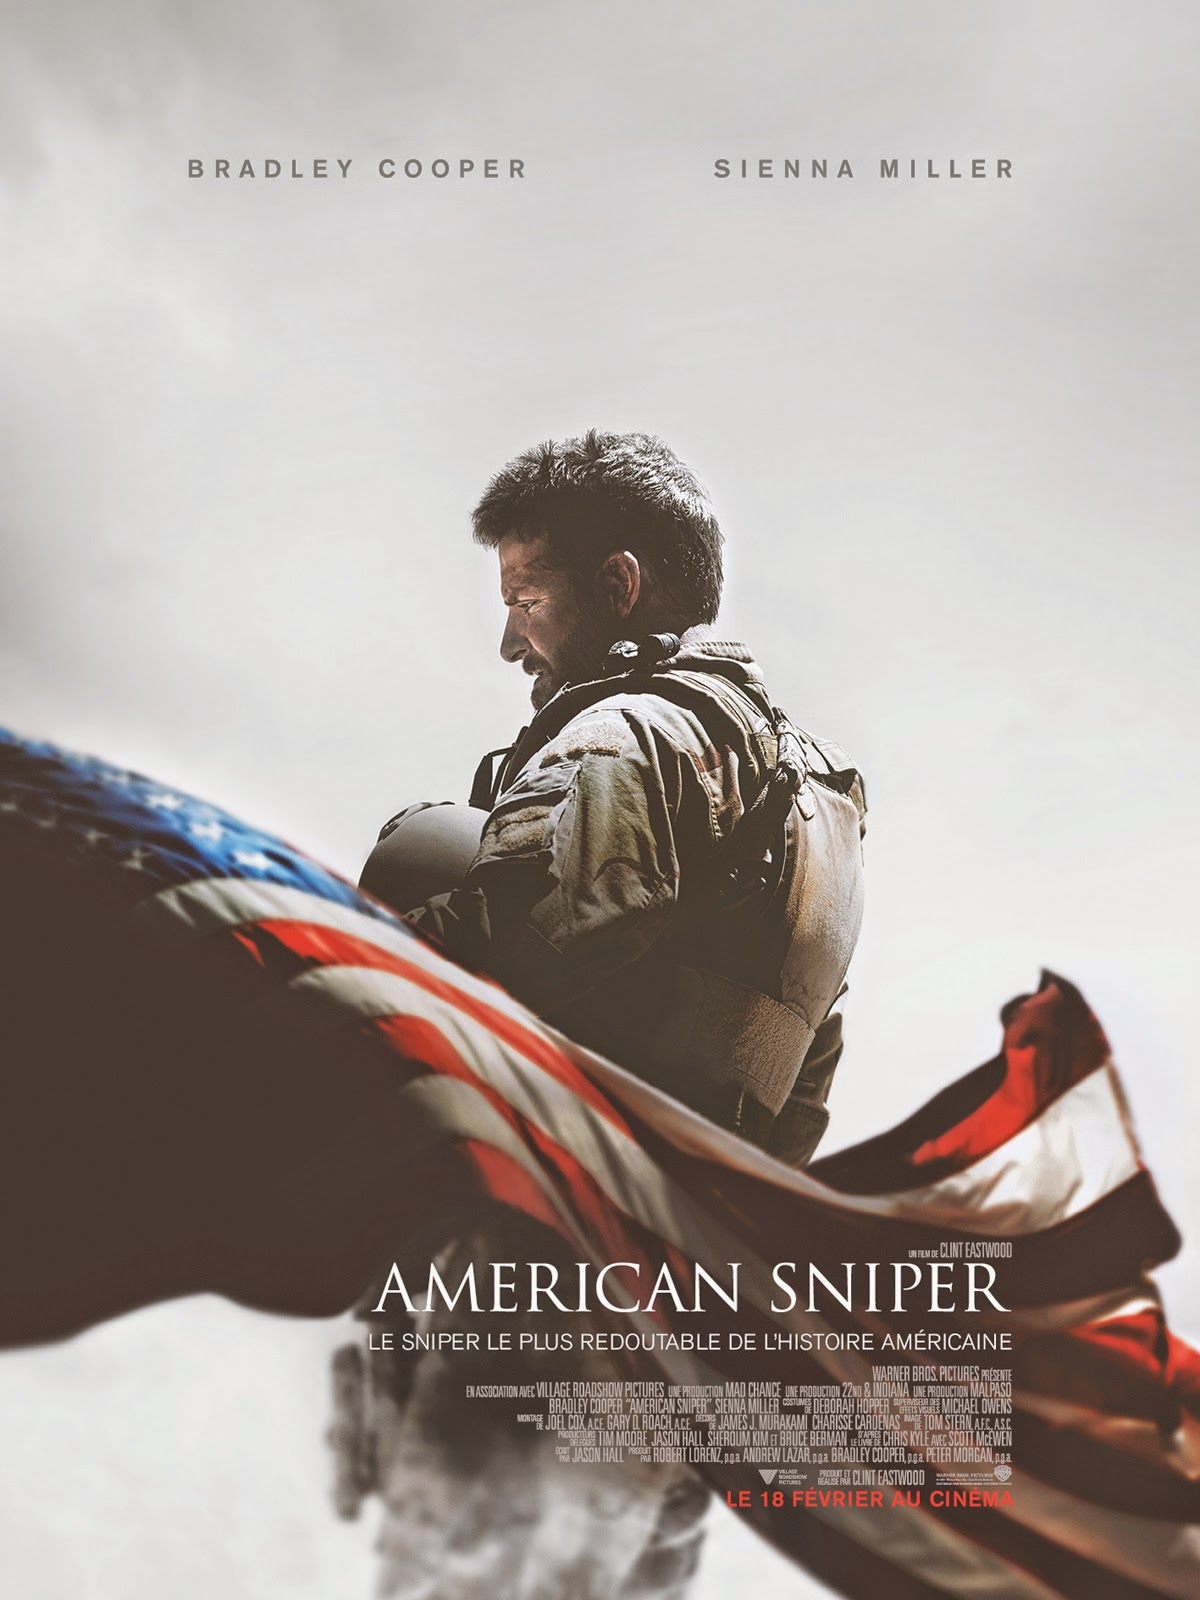 <i>American Sniper</i> (2014), l'homme derrière le fusil / the man behind the gun 7 image